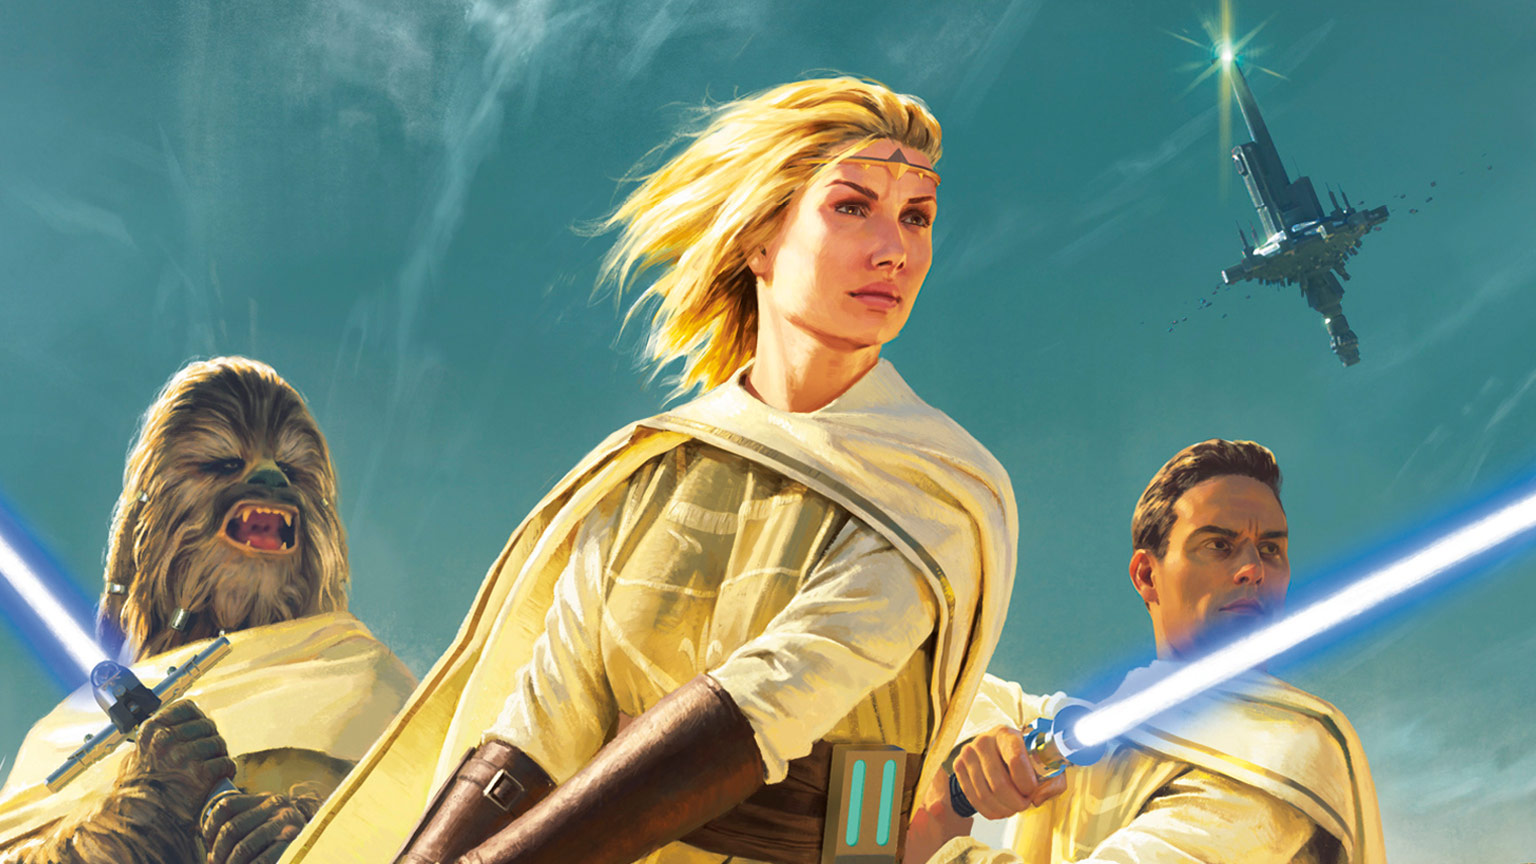 Cover art from Star Wars: Light of the Jedi: The High Republic